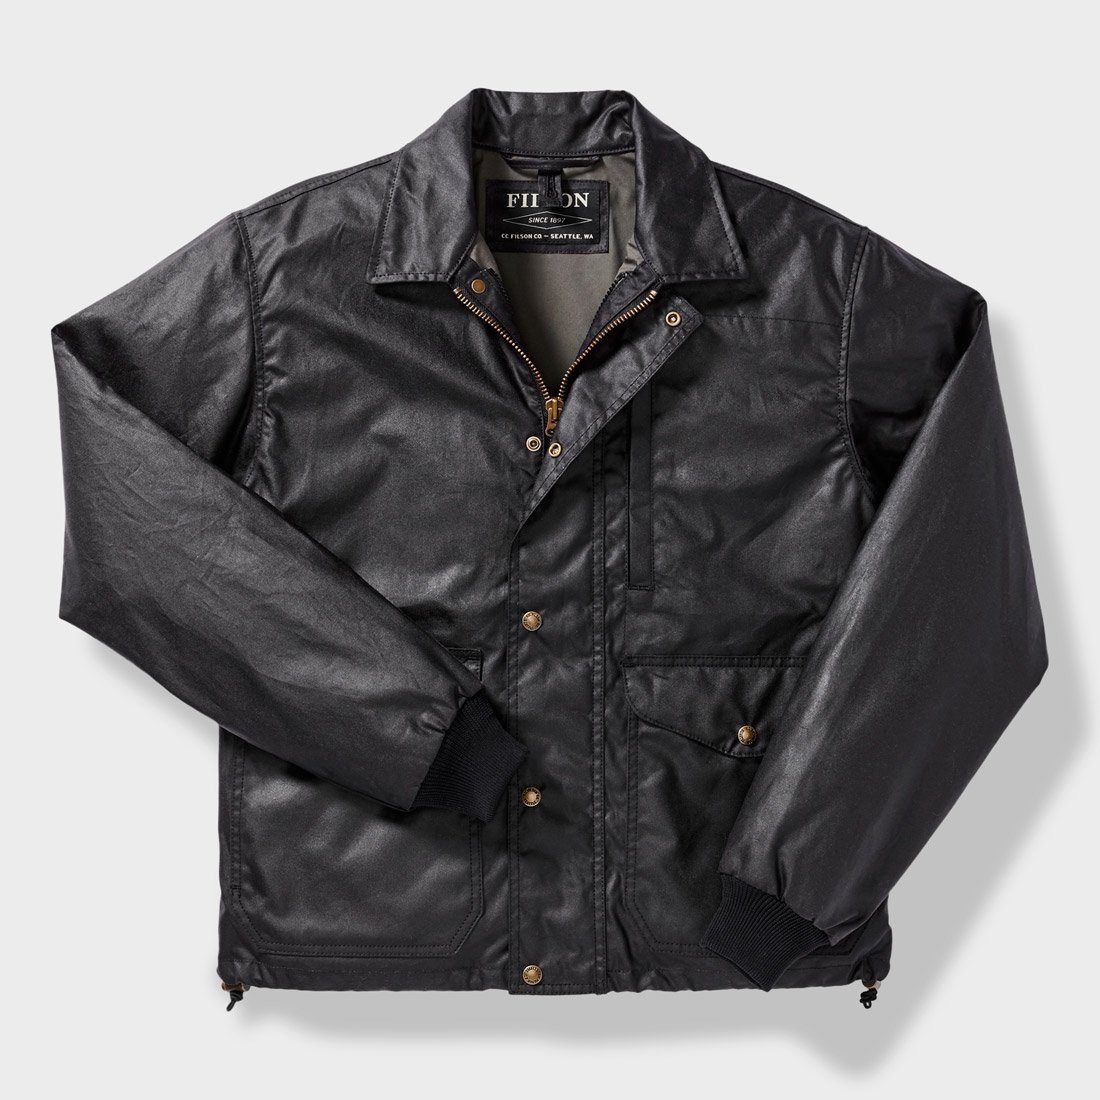 Filson Aberdeen Work Jacket Blue Coal